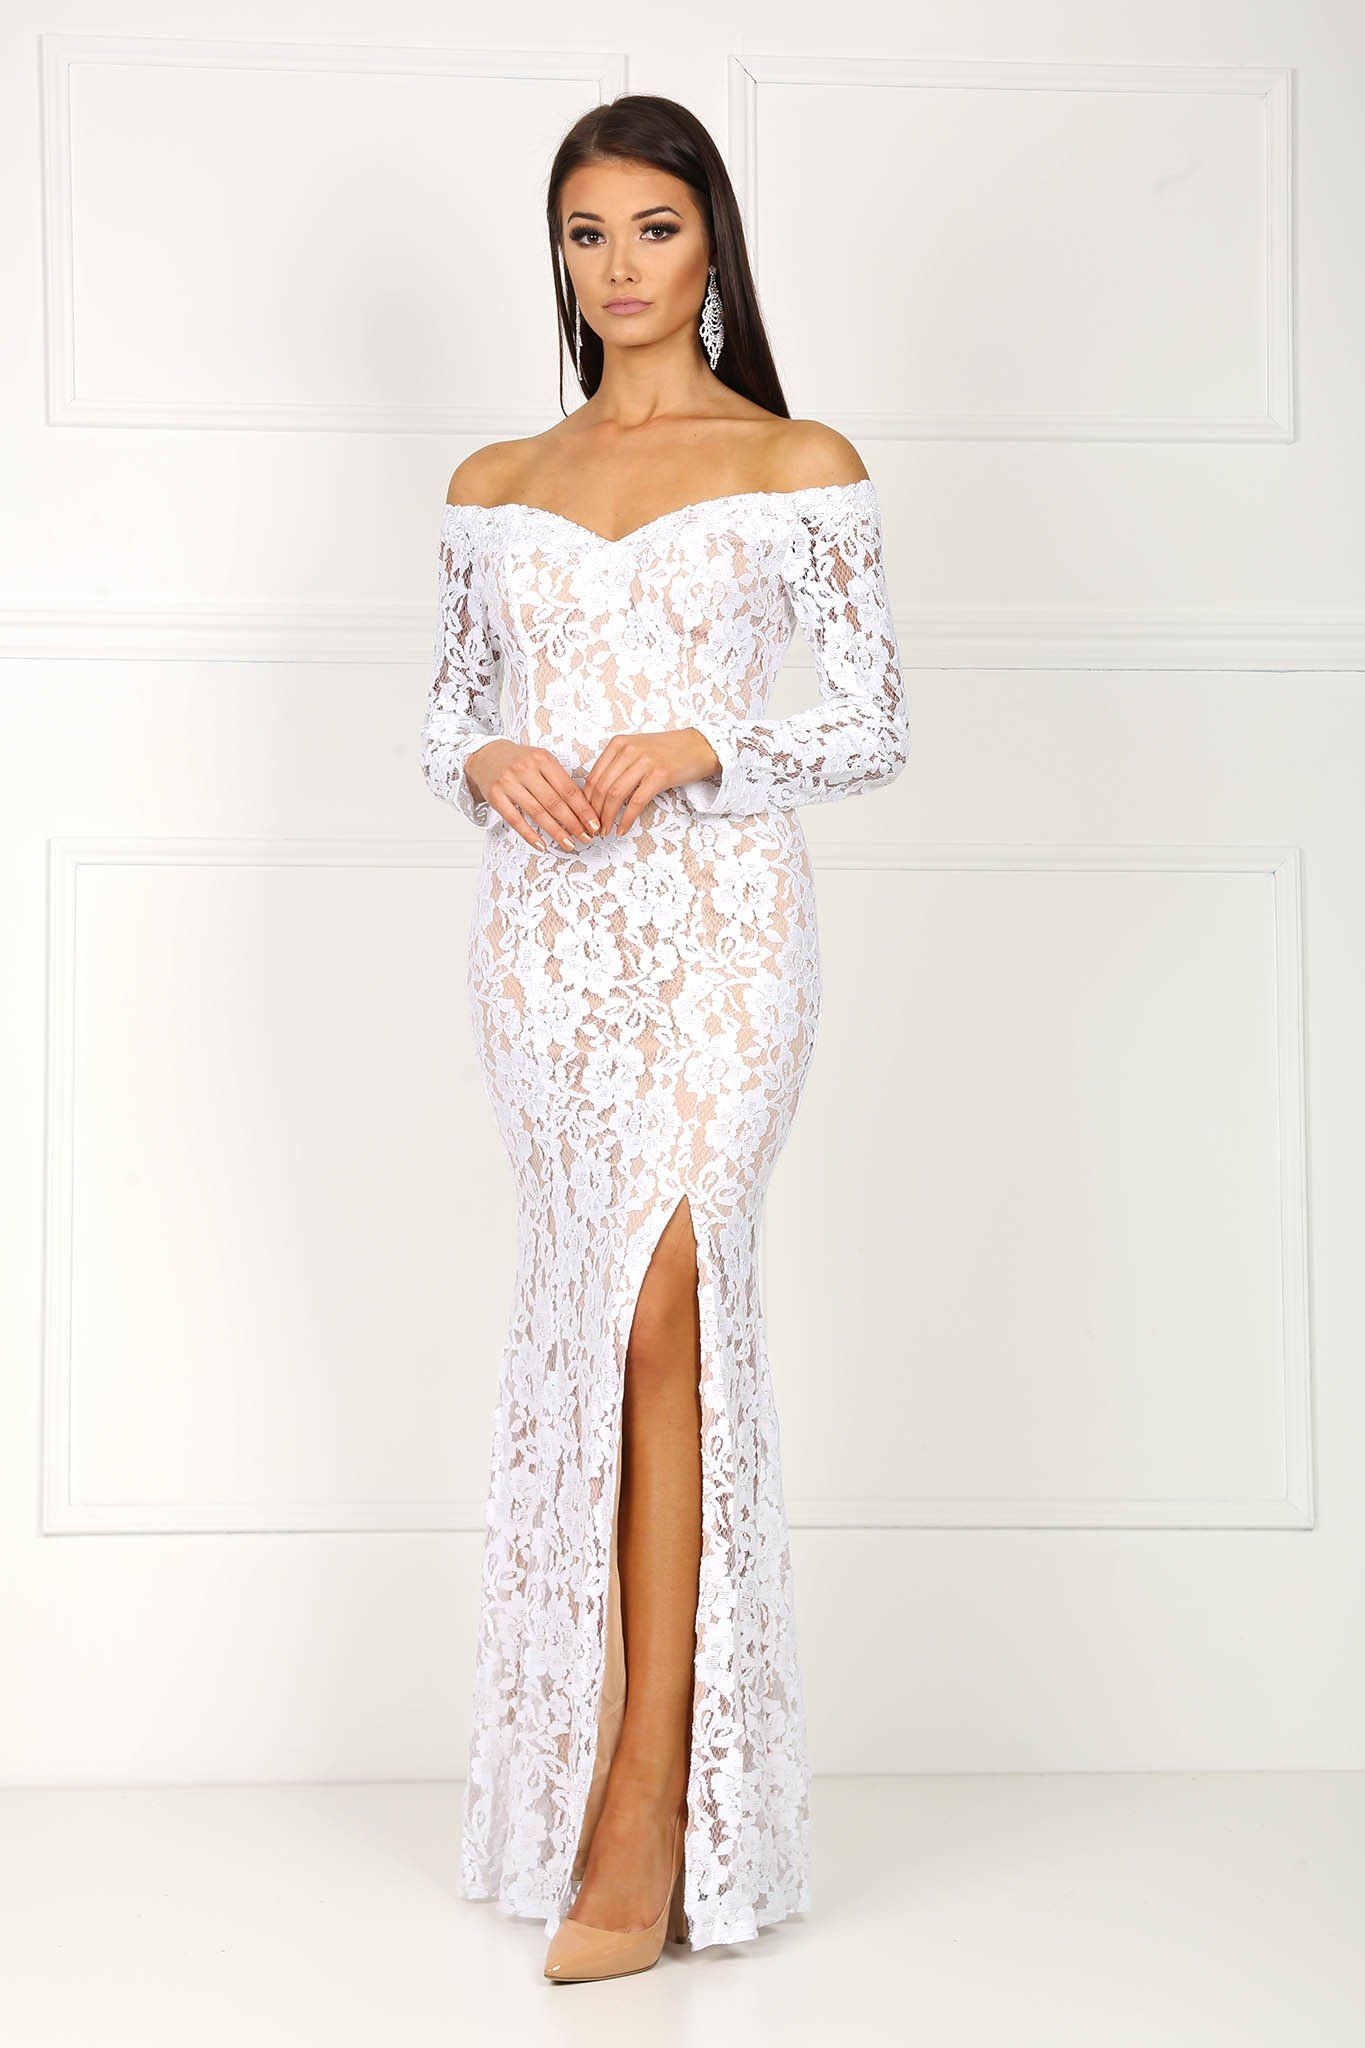 White open shoulder lace long sleeve gown with beige underlining, sheer lace sleeves and front thigh high slit